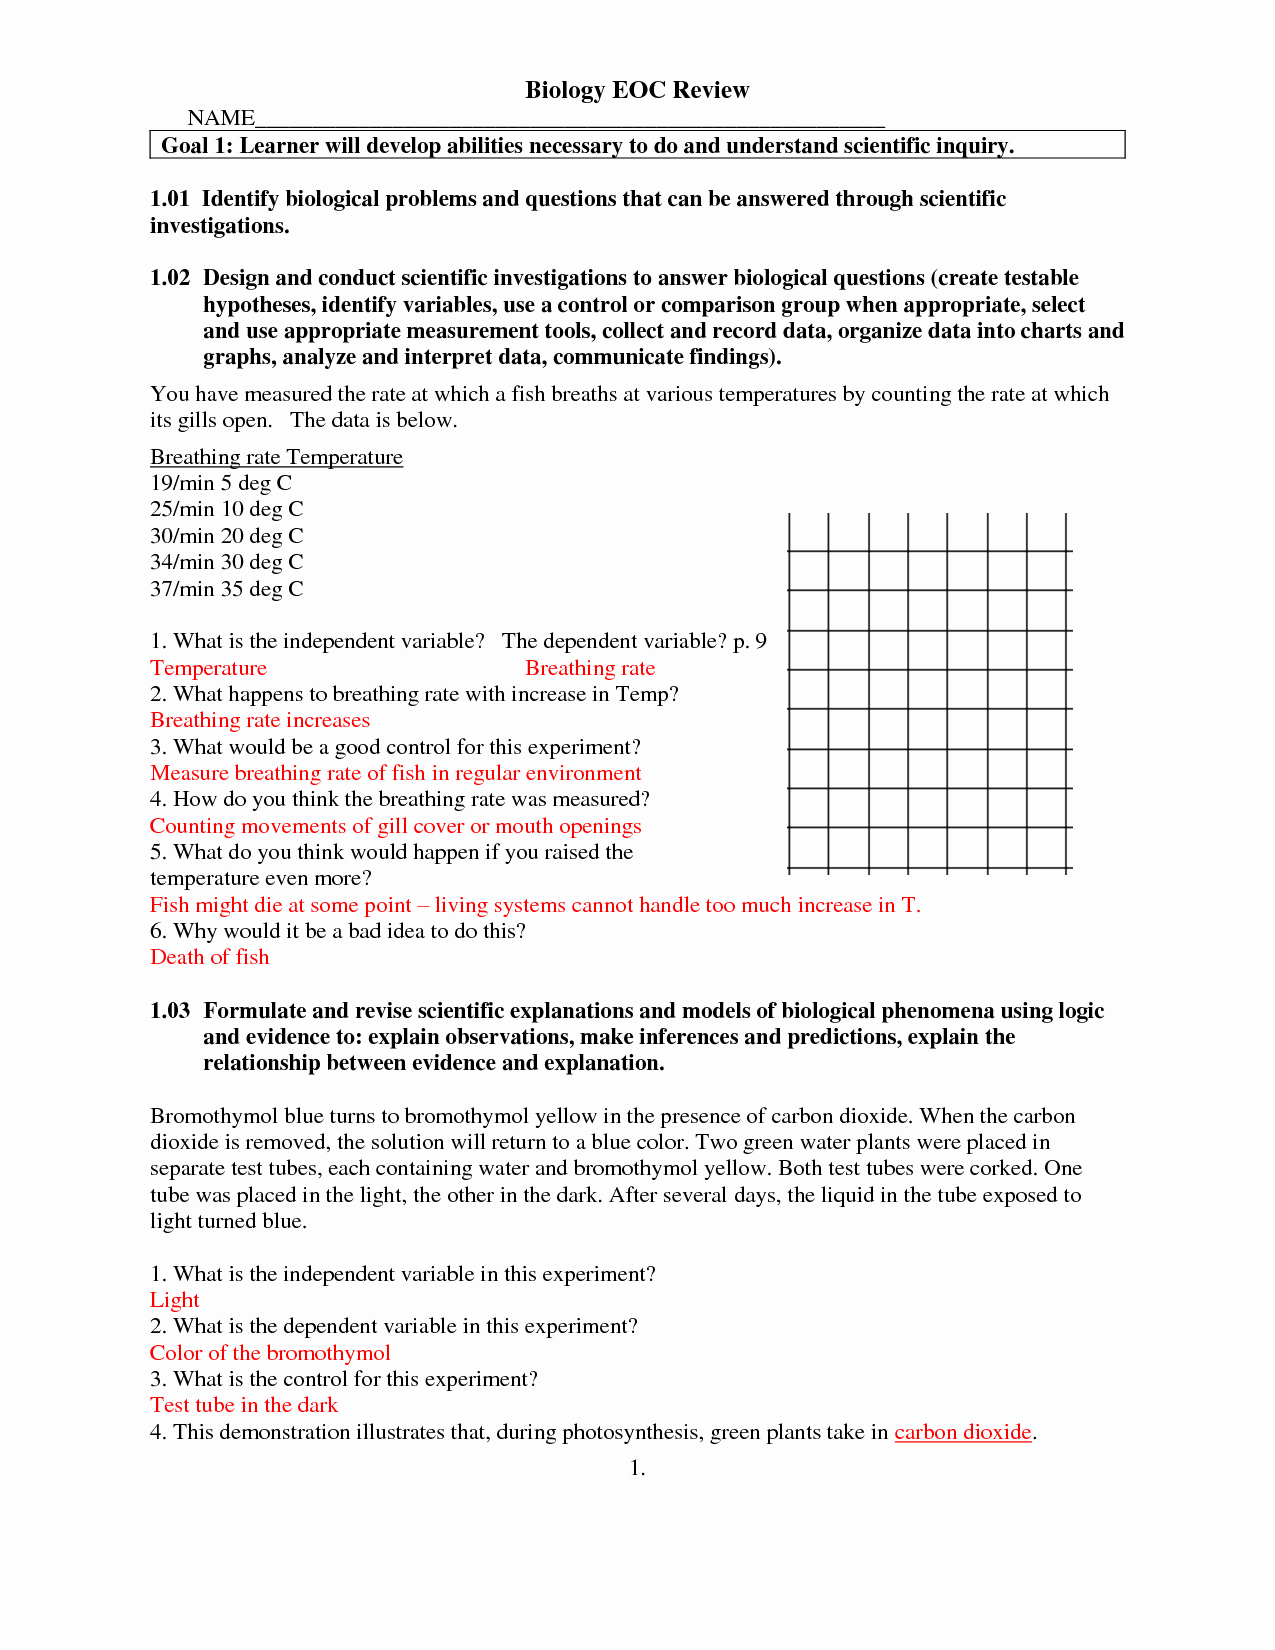 50 Protein Synthesis Worksheet Answer Key